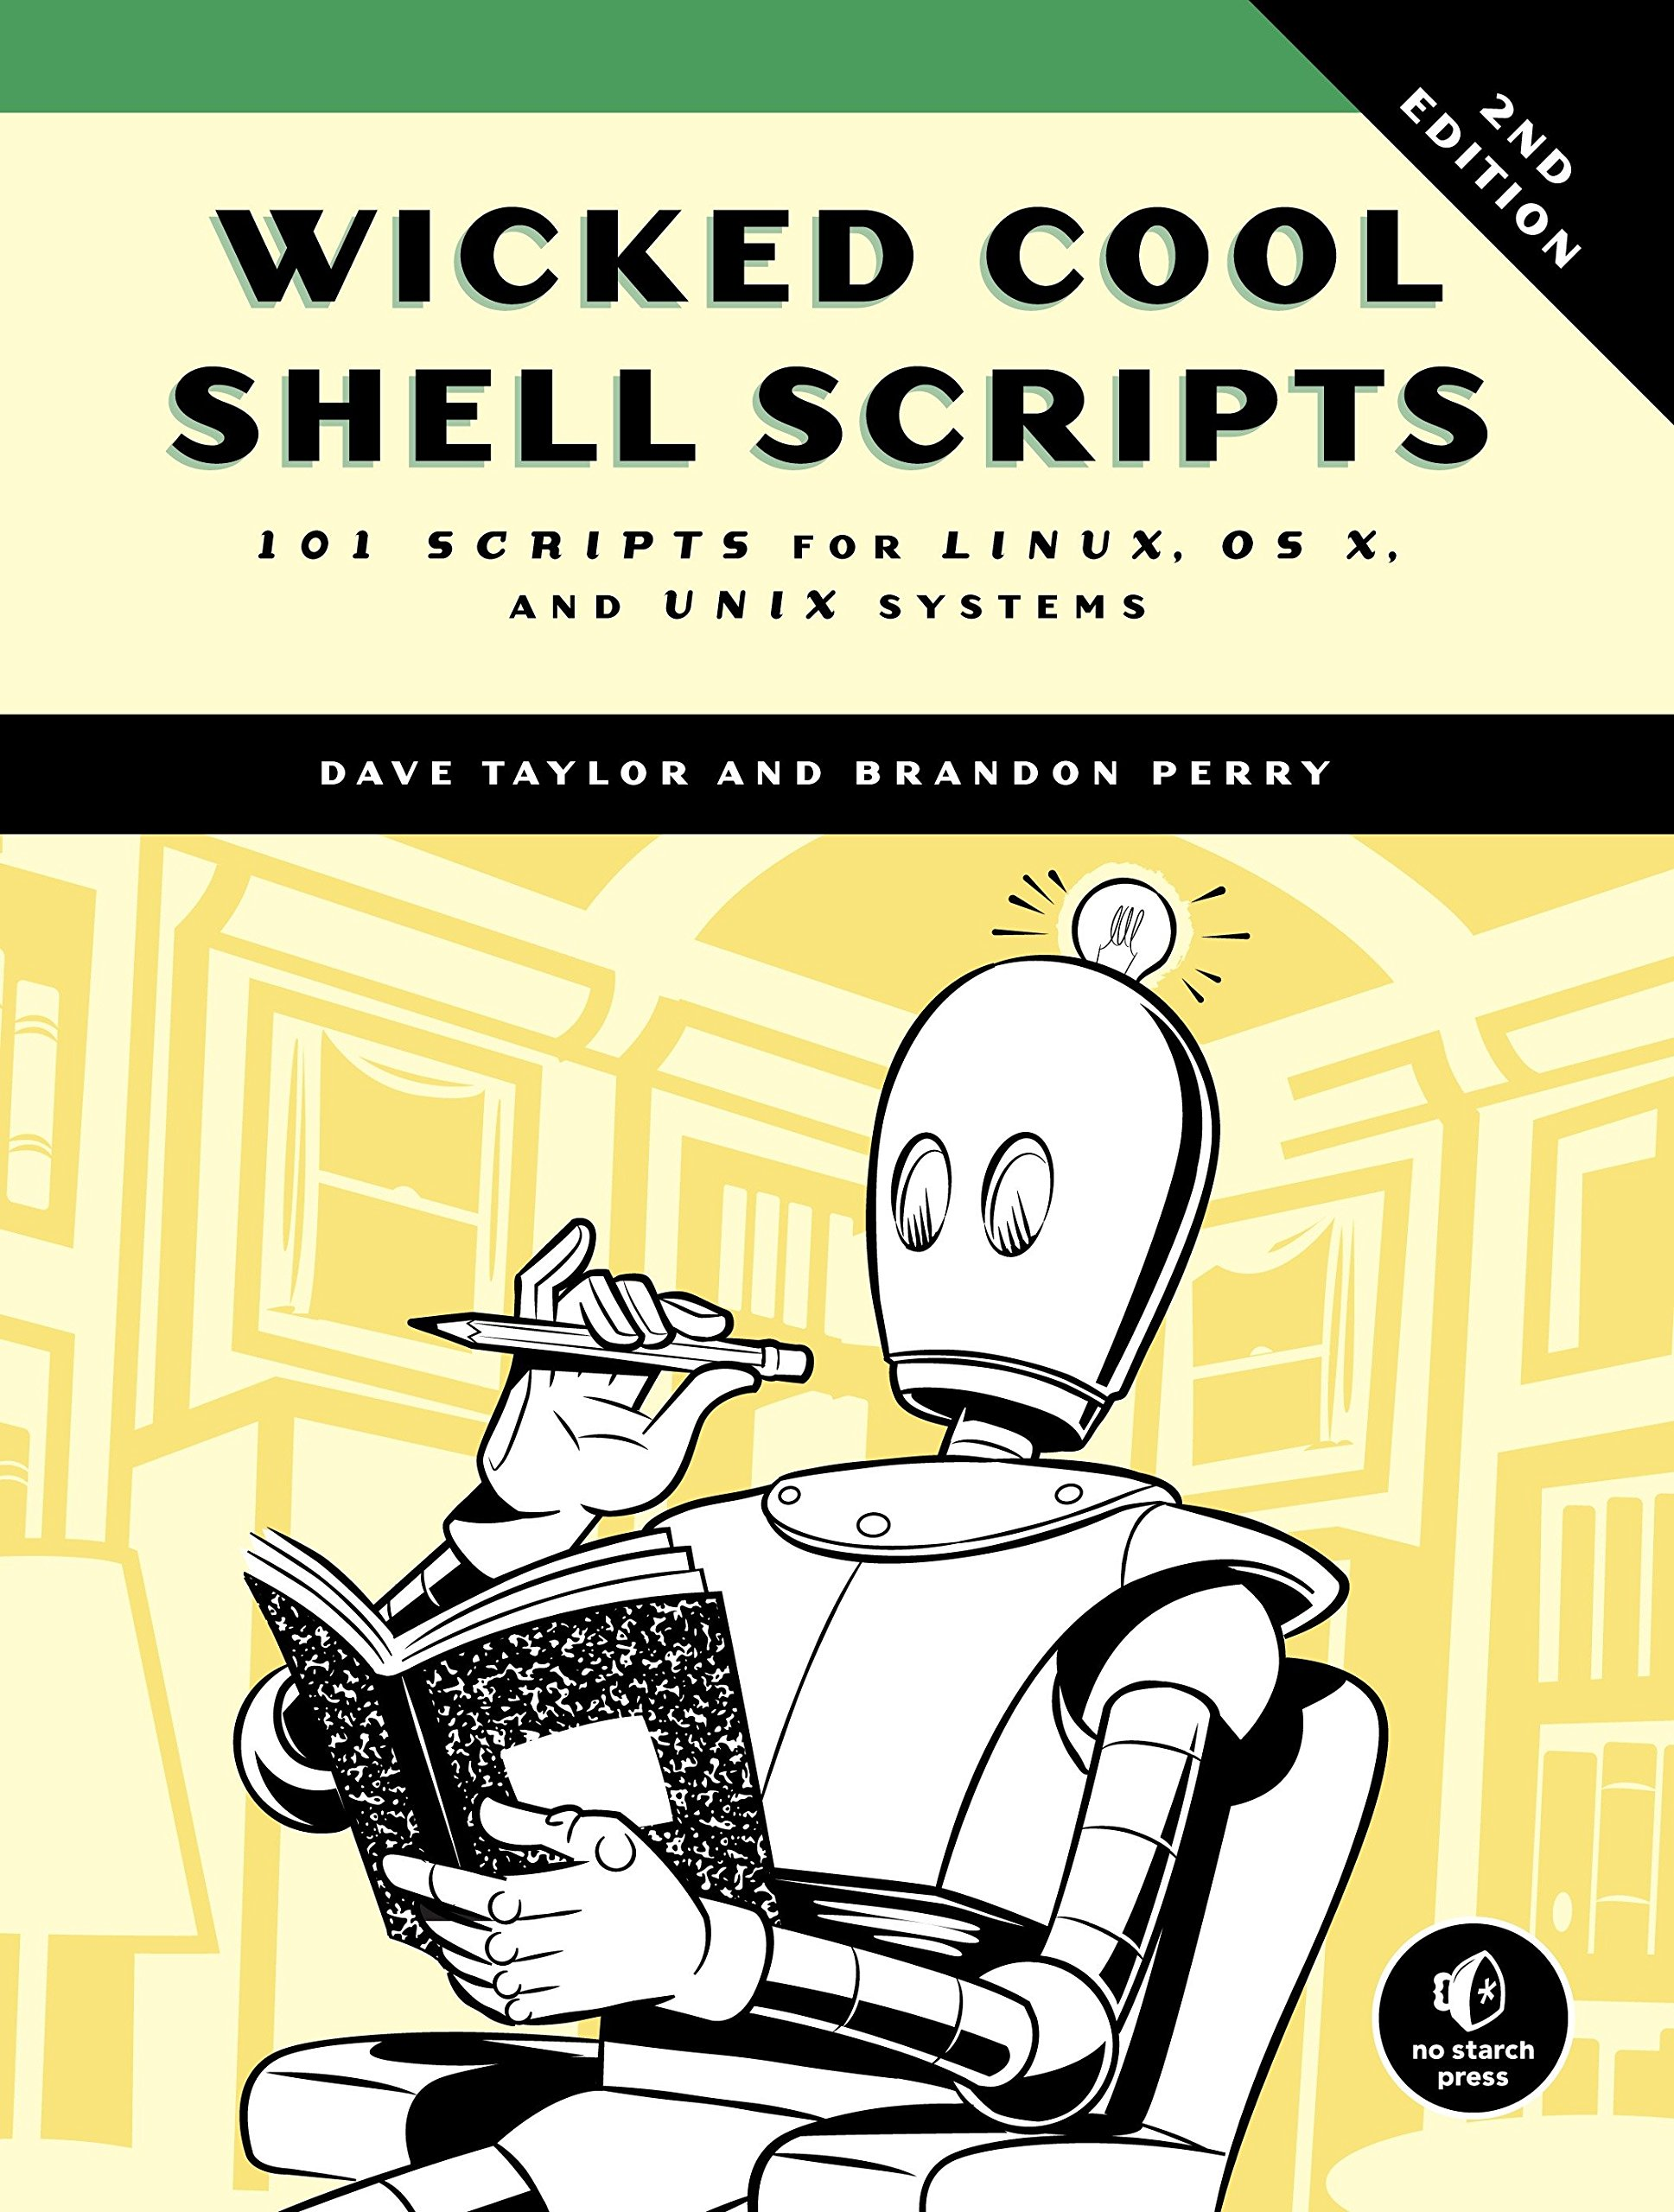 Wicked Cool Shell Scripts, 2nd Edition: 101 Scripts for Linux, OS X, and  UNIX Systems: Dave Taylor, Brandon Perry: 9781593276027: Books - Amazon.ca